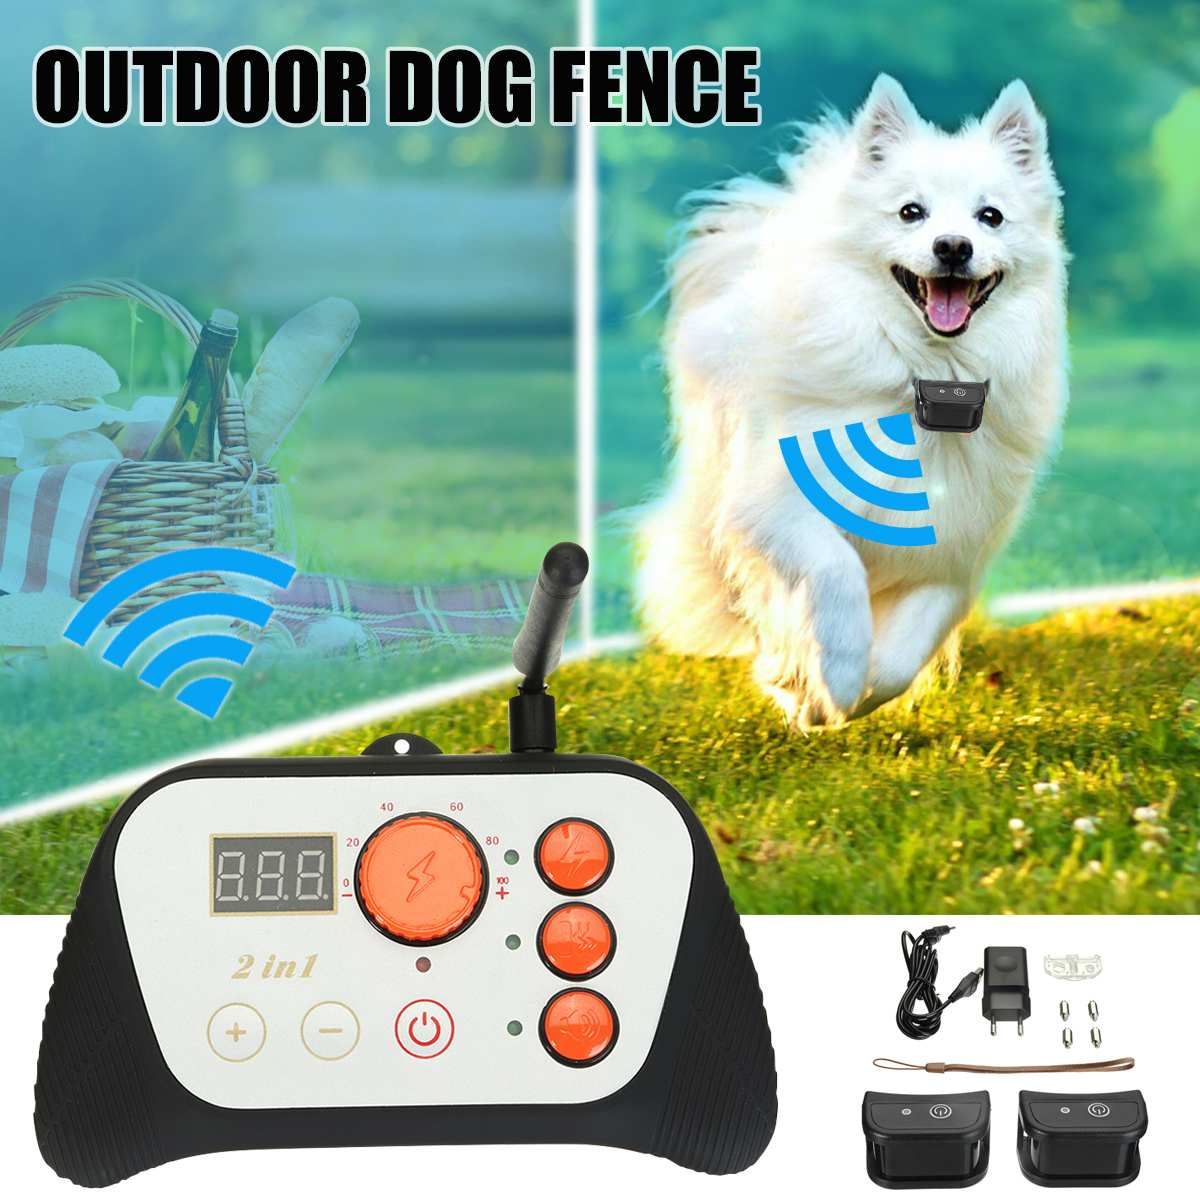 Outdoor 2in1 Wireless 2 Dog Fence Pet Containment System RechargeableOutdoor 2in1 Wireless 2 Dog Fence Pet Containment System Rechargeable